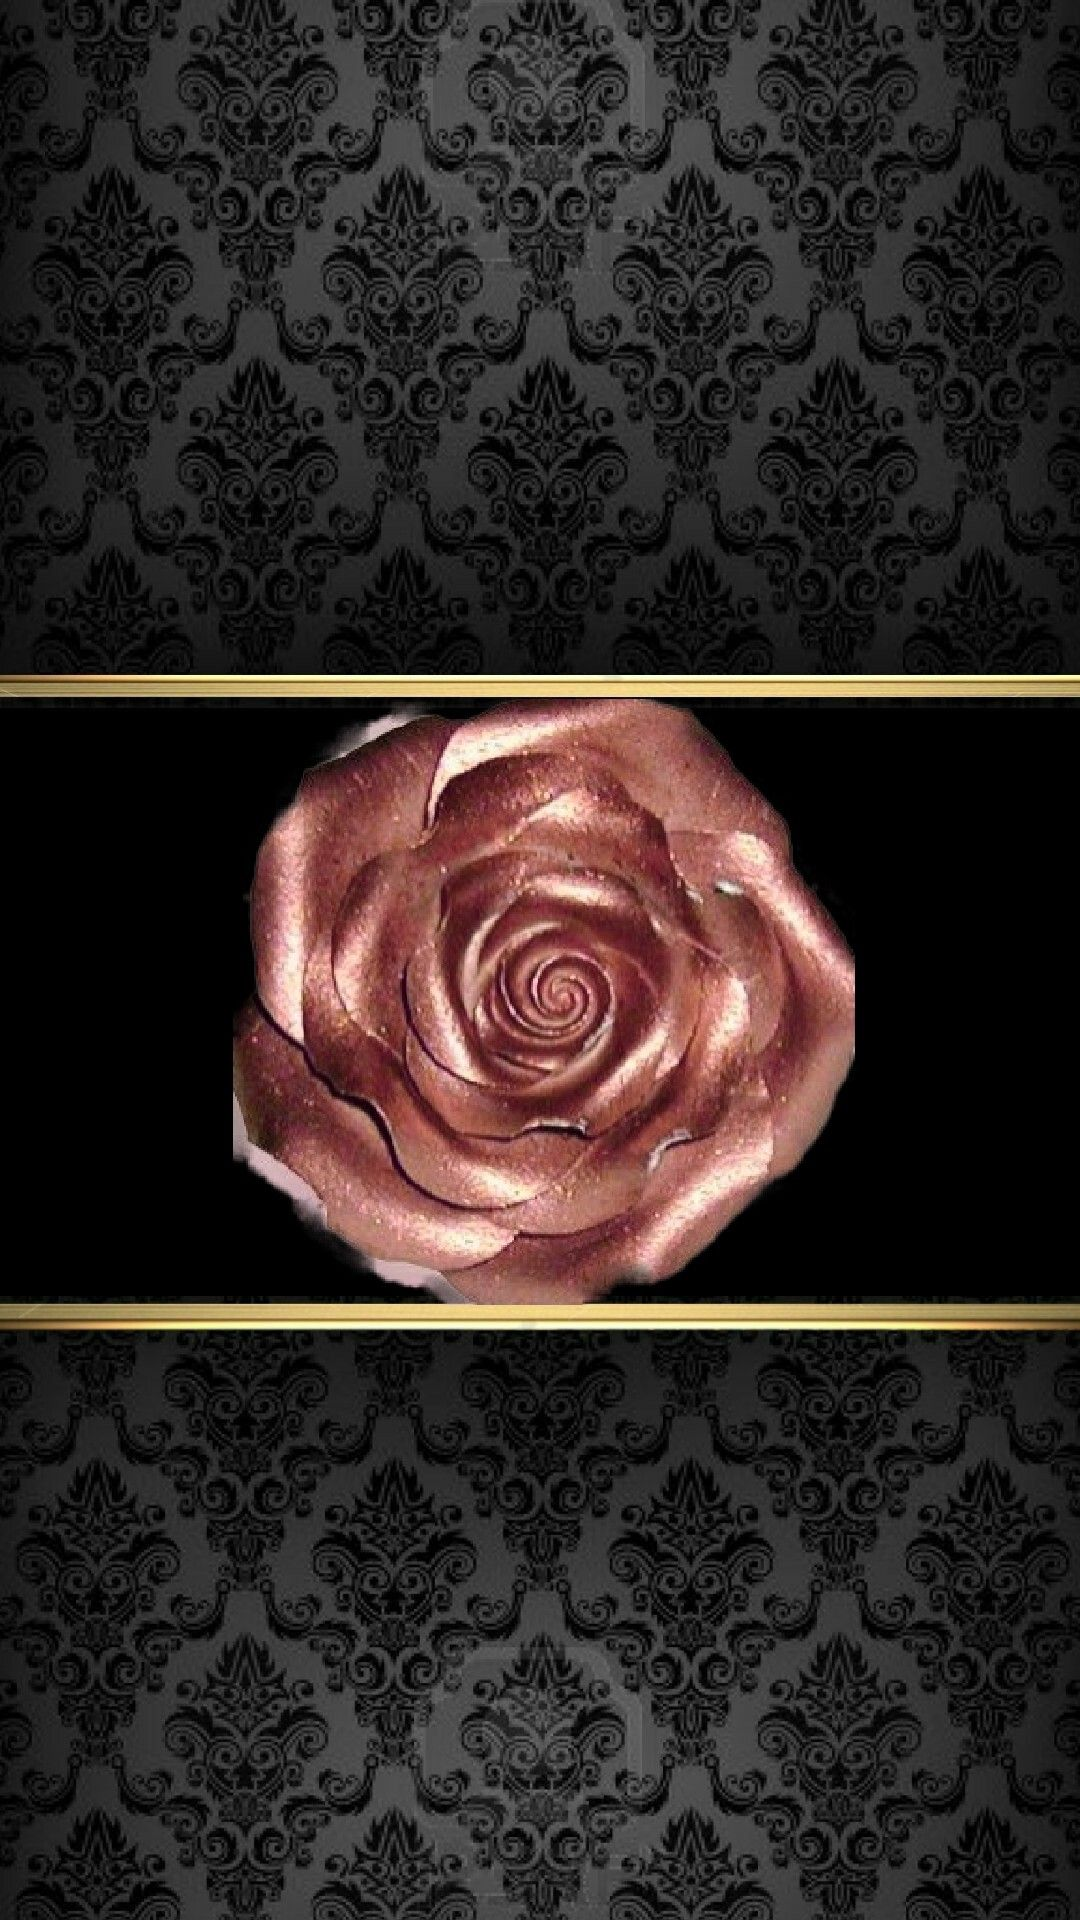 Black And Gold Rose Fondos Negros Plata Oro Sobres De Papel